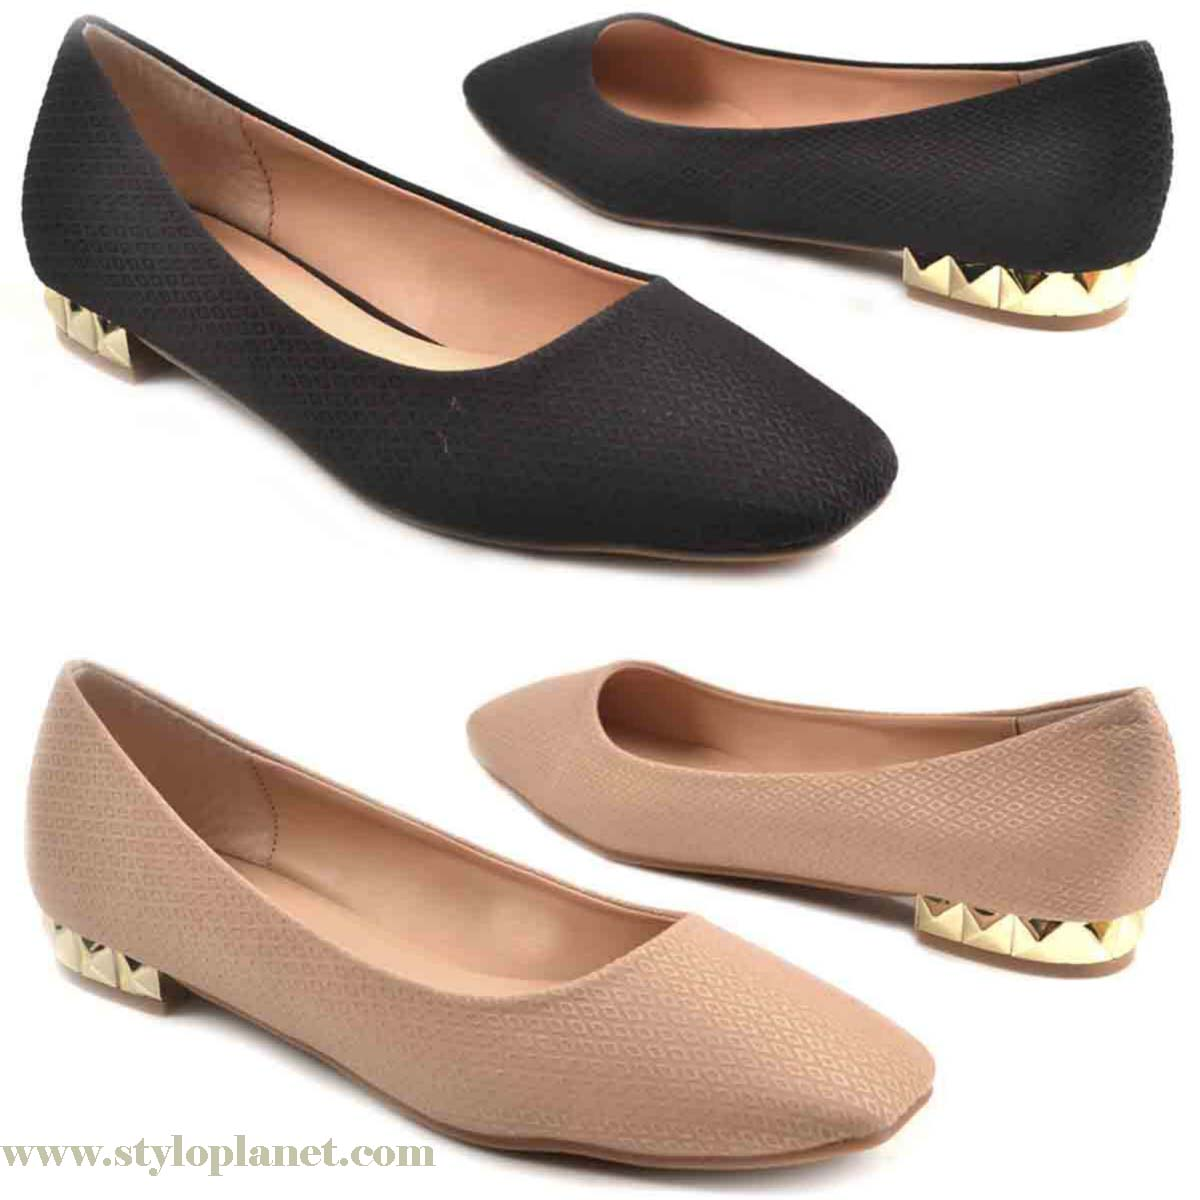 Metro Shoes Latest Winter Pumps Collection 16 Stylo Planet